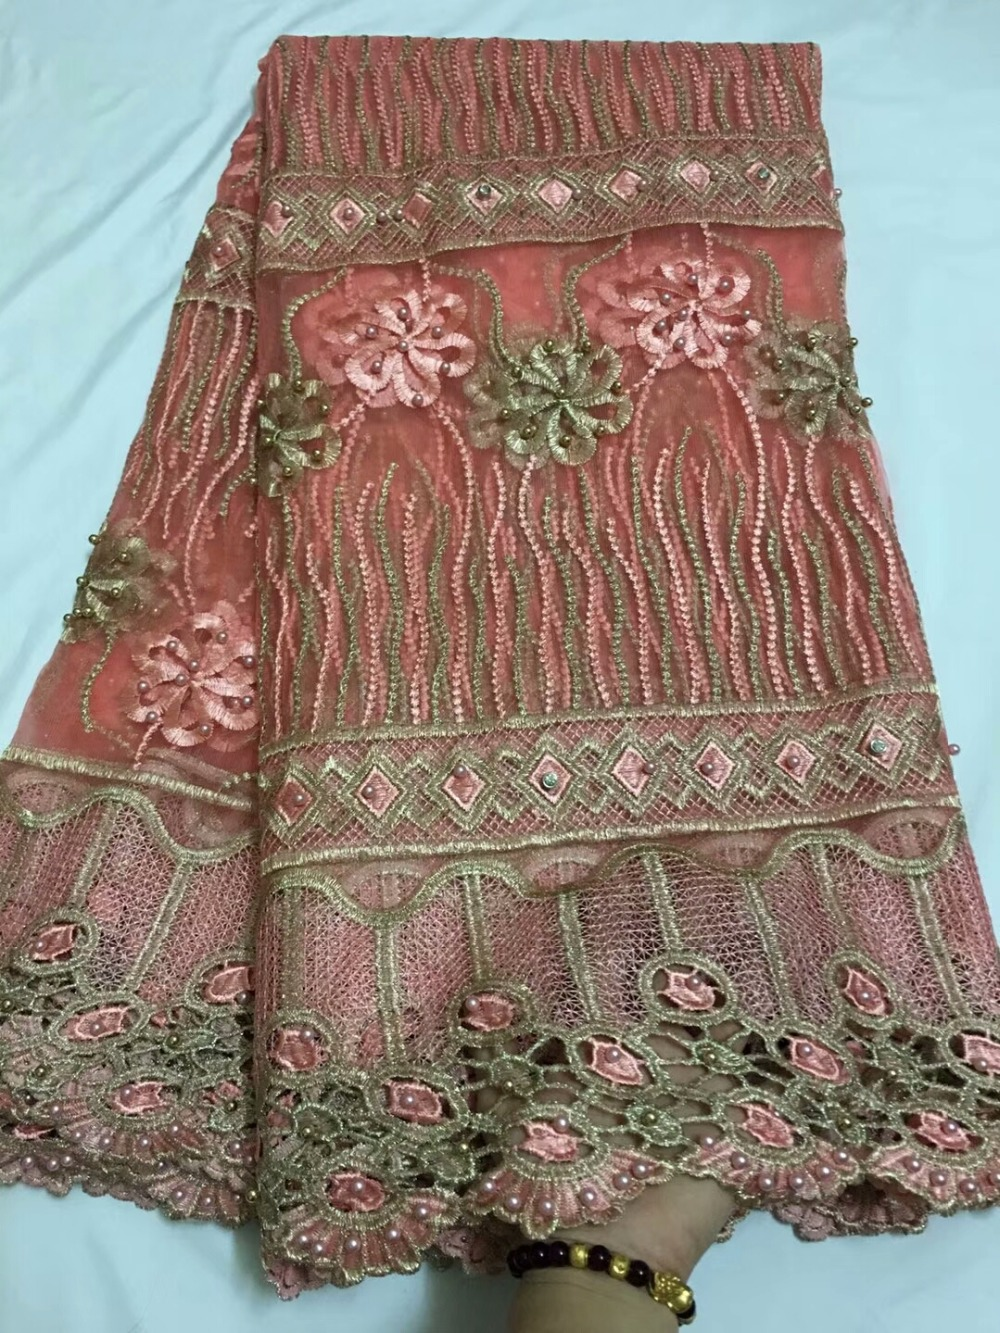 2018 African Cord Lace High Quality French Lace Fabric With Beads African Lace Fabric For Nigerian Wedding Dress2018 African Cord Lace High Quality French Lace Fabric With Beads African Lace Fabric For Nigerian Wedding Dress